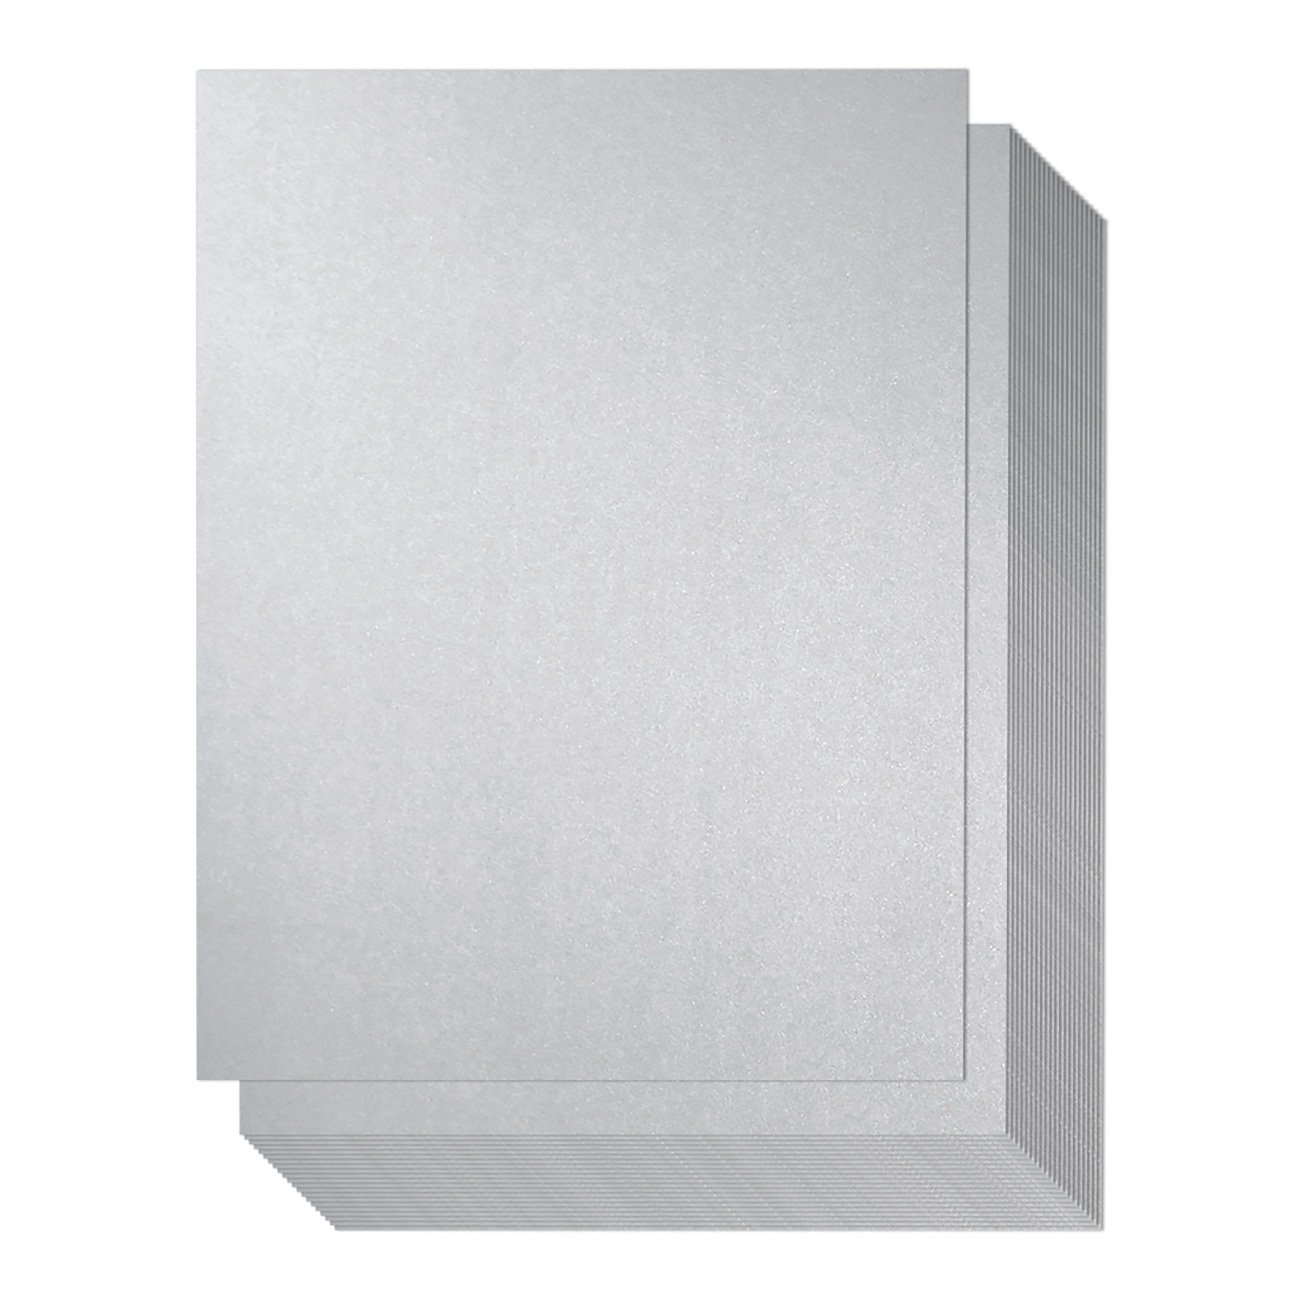 Shimmer Paper - 96 Pack-Silver Metallic Cardstock Paper, Double Sided, Laser Printer Friendly - Ideal for Weddings, Baby Showers, Birthdays, Craft, Letter Size Sheets, 250 GSM, 8.7 x 0.03 x 11 Inches